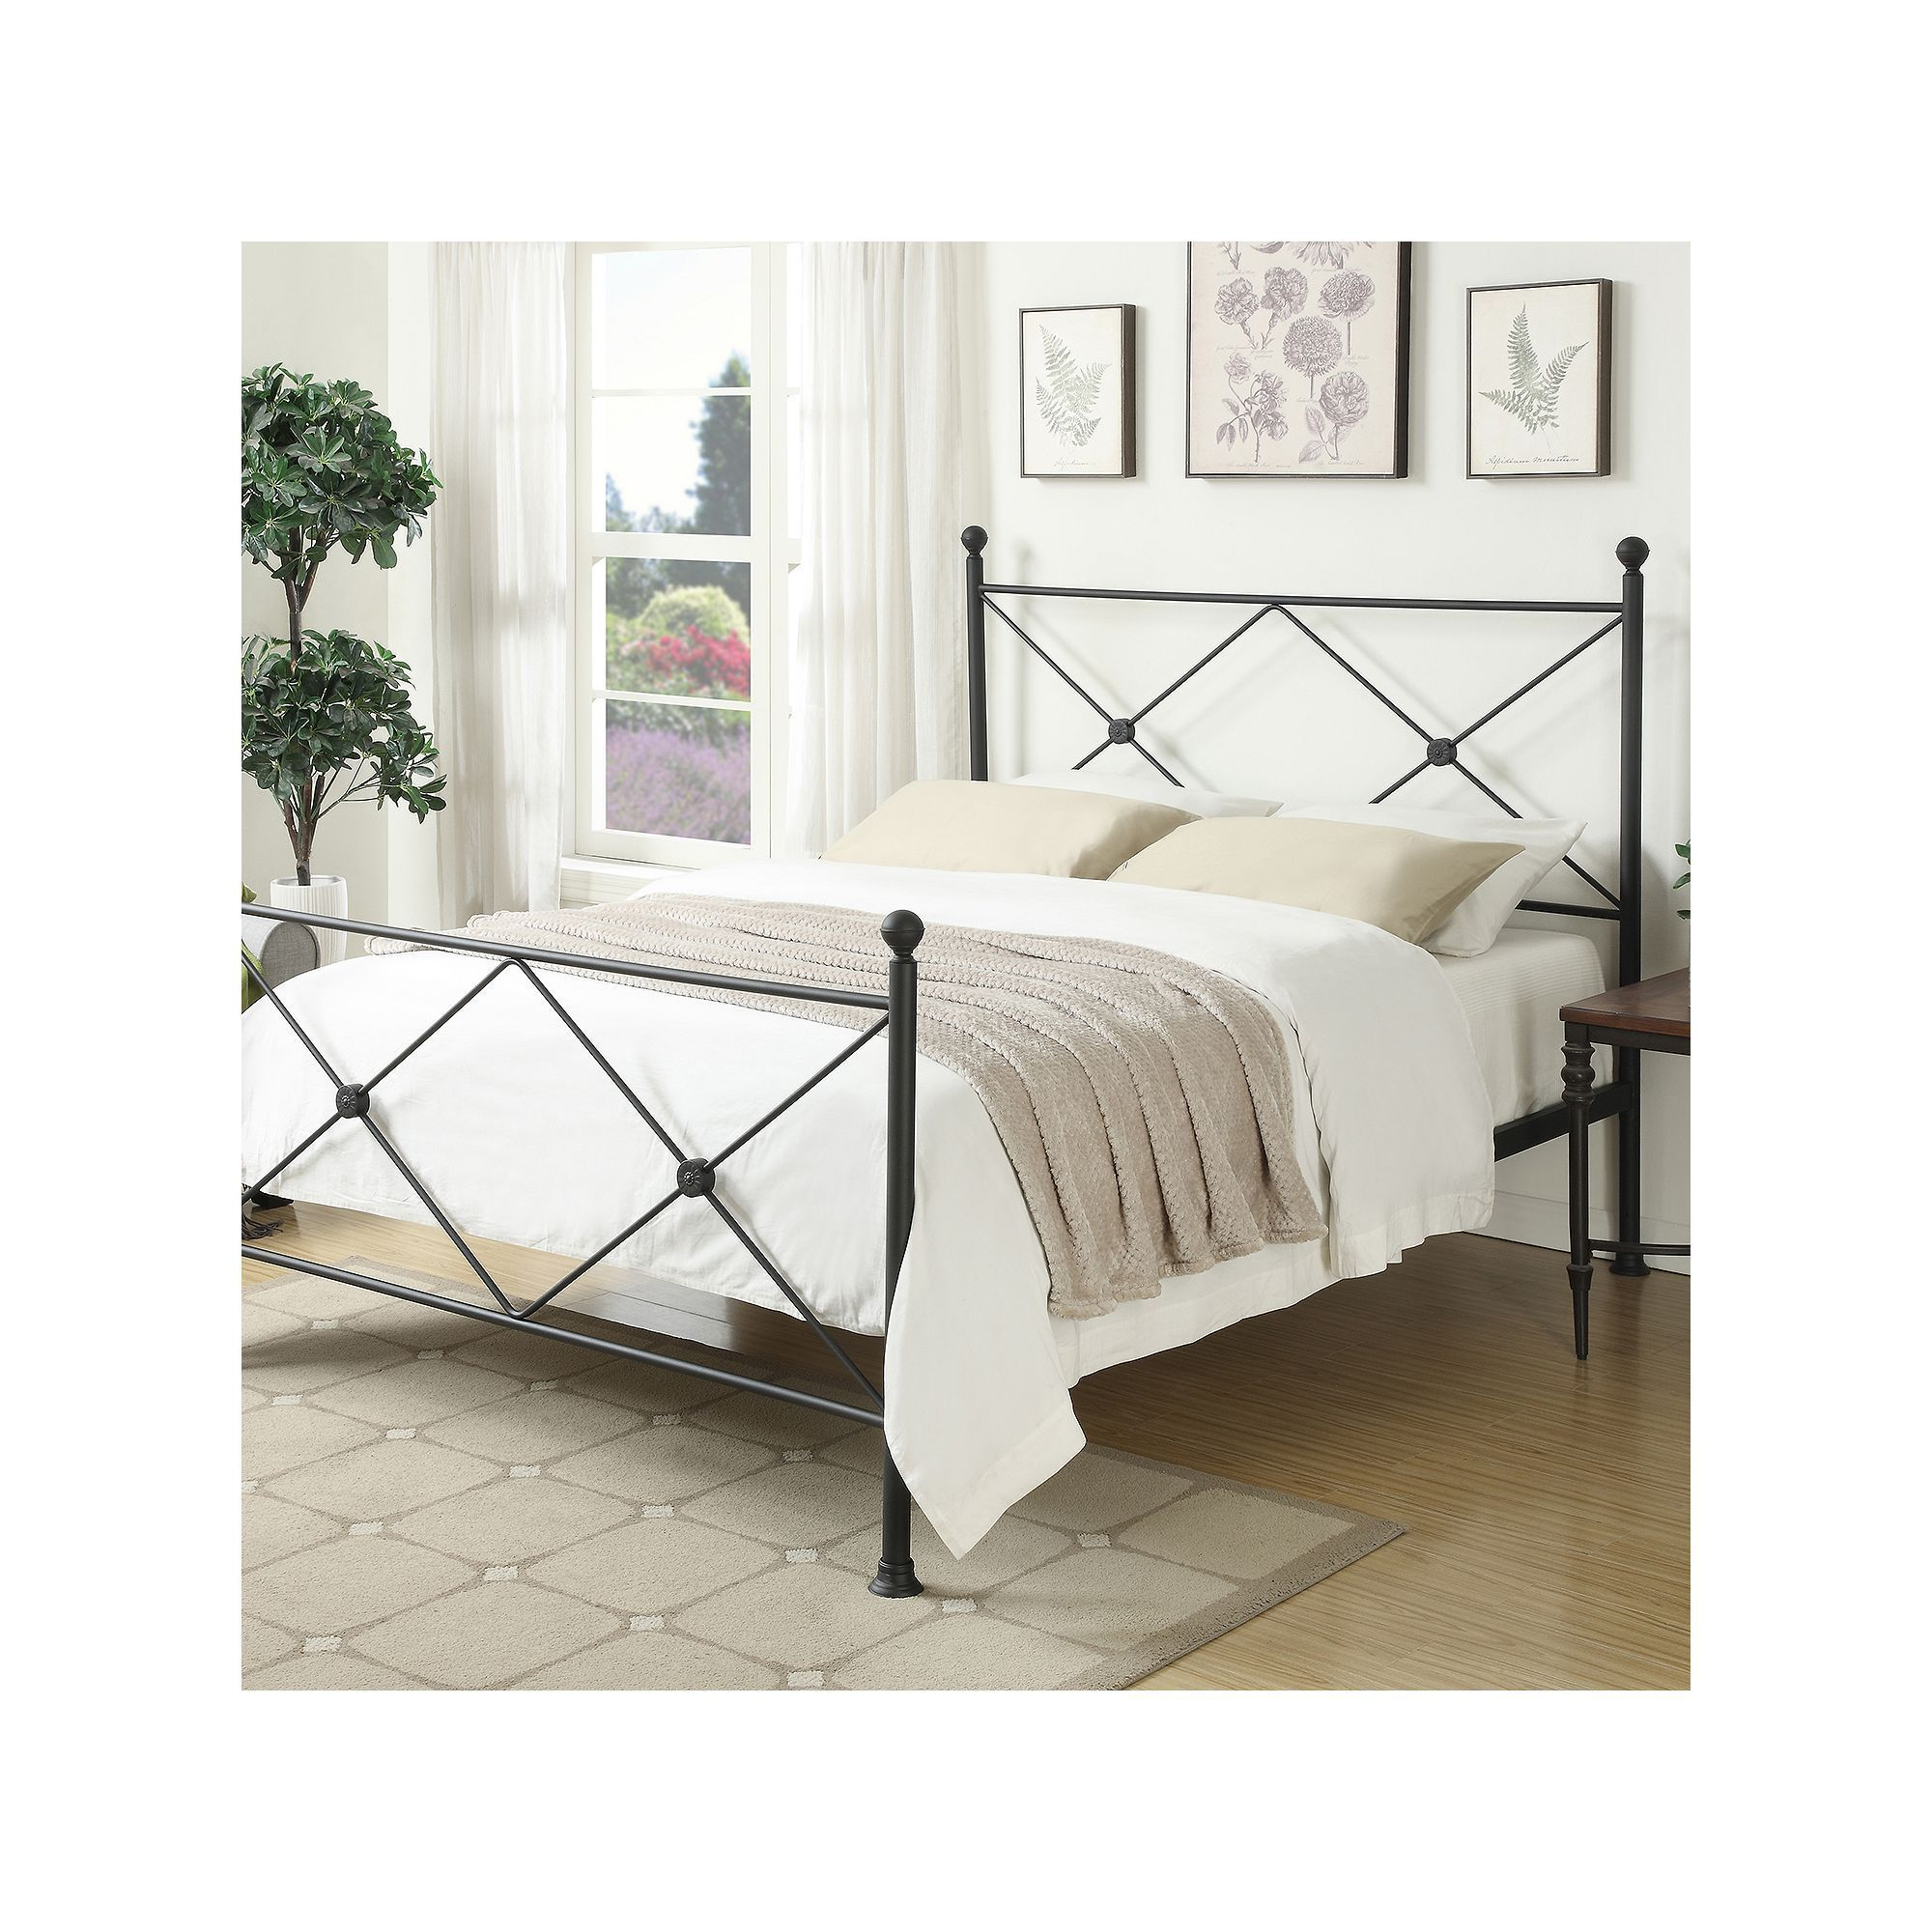 Best Pulaski All N One X Frame Queen Metal Bed Queen Metal Bed Black Queen Bed Frame Black Queen Bed 640 x 480